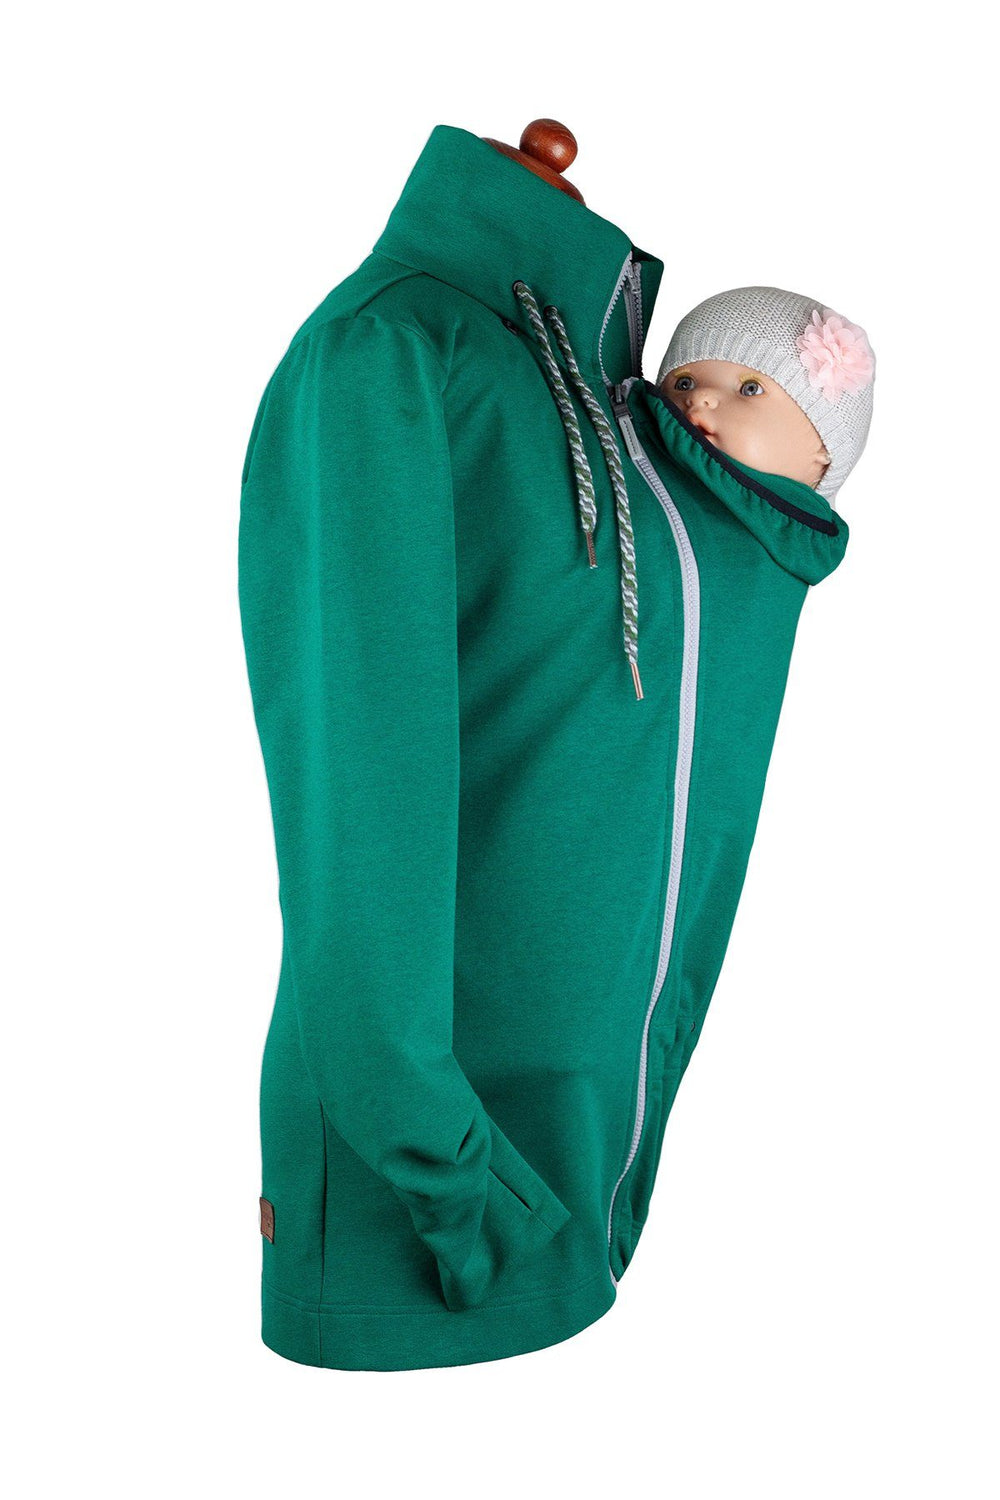 Angel Wings Babywearing Sweatshirt Emerald Green-Babywearing Outerwear-Angel Wings- Little Zen One US Babywearing baby carriers